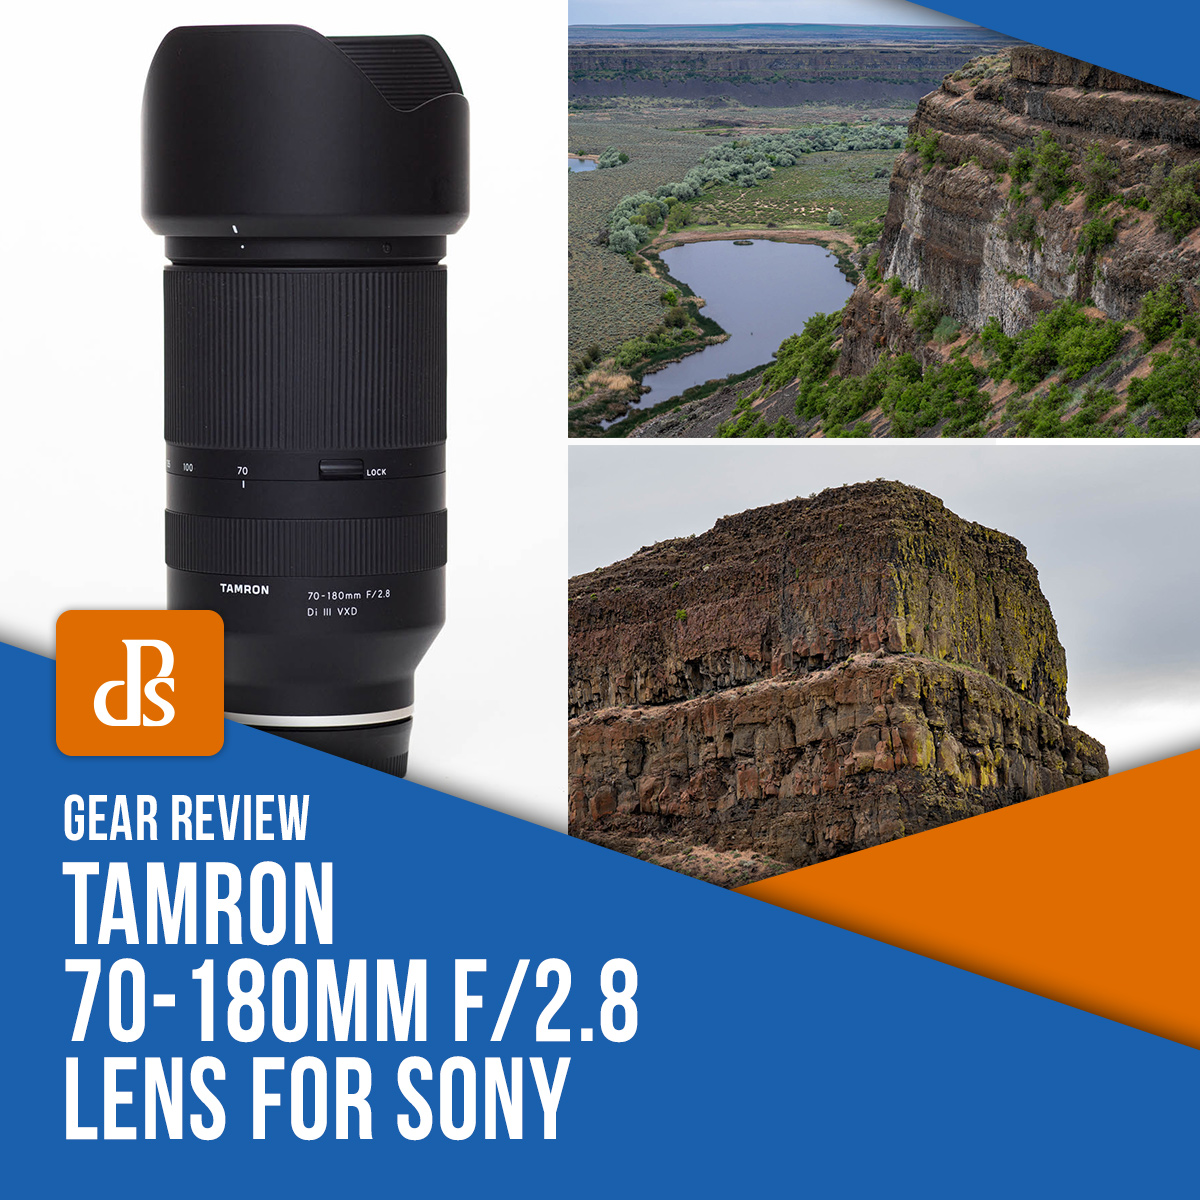 Tamron 70-180mm f/2.8 lens for sony review